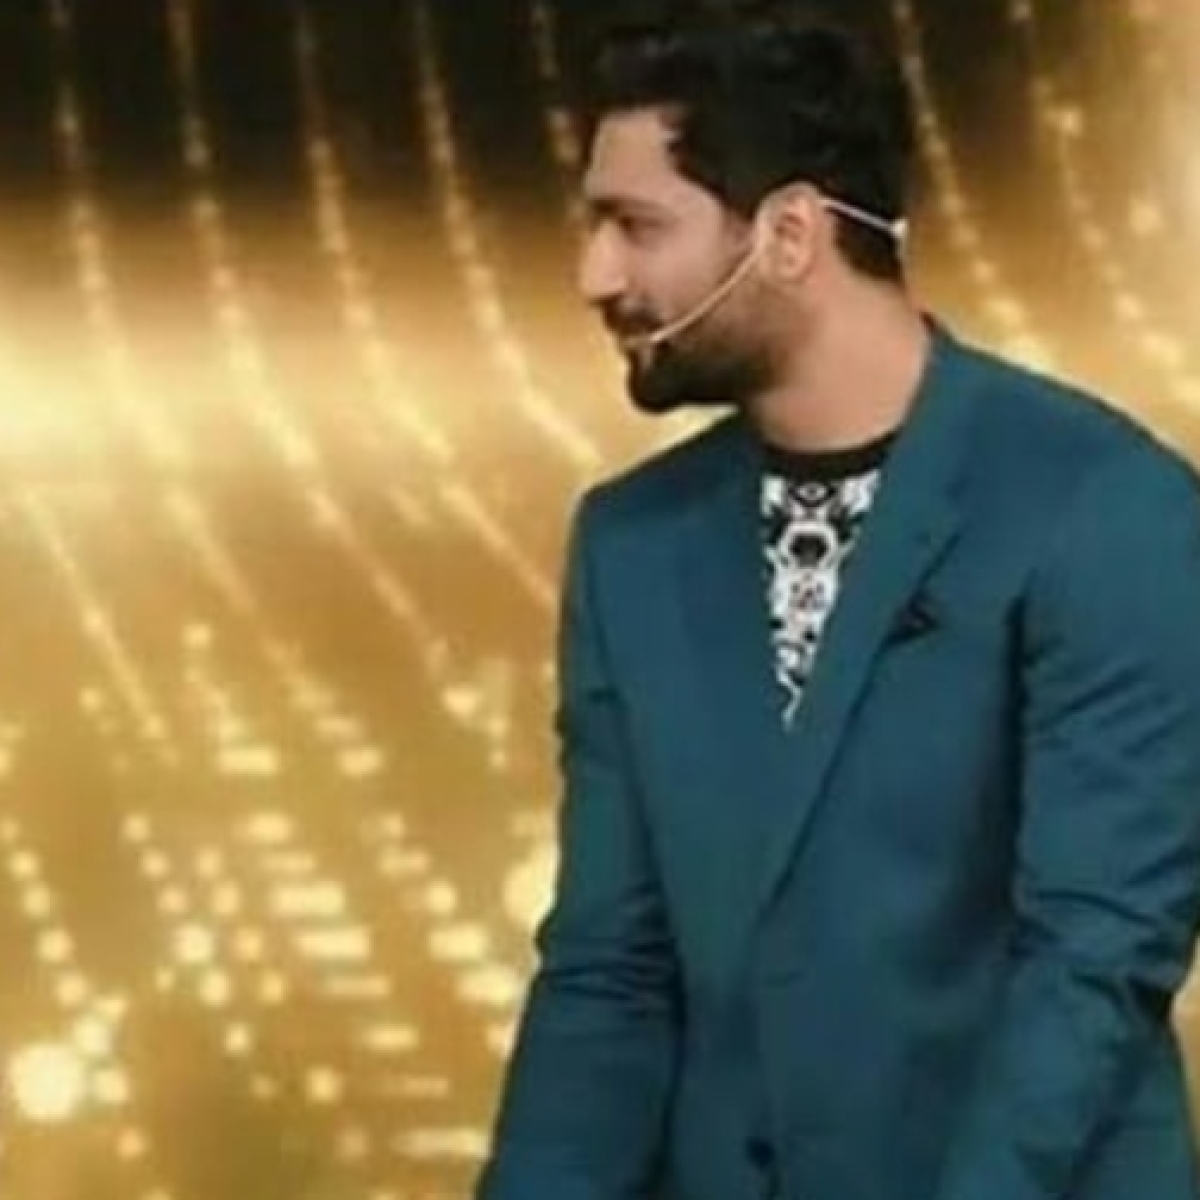 Watch video: Here's what happened when Vicky Kaushal proposed to Katrina Kaif in front of Salman Khan